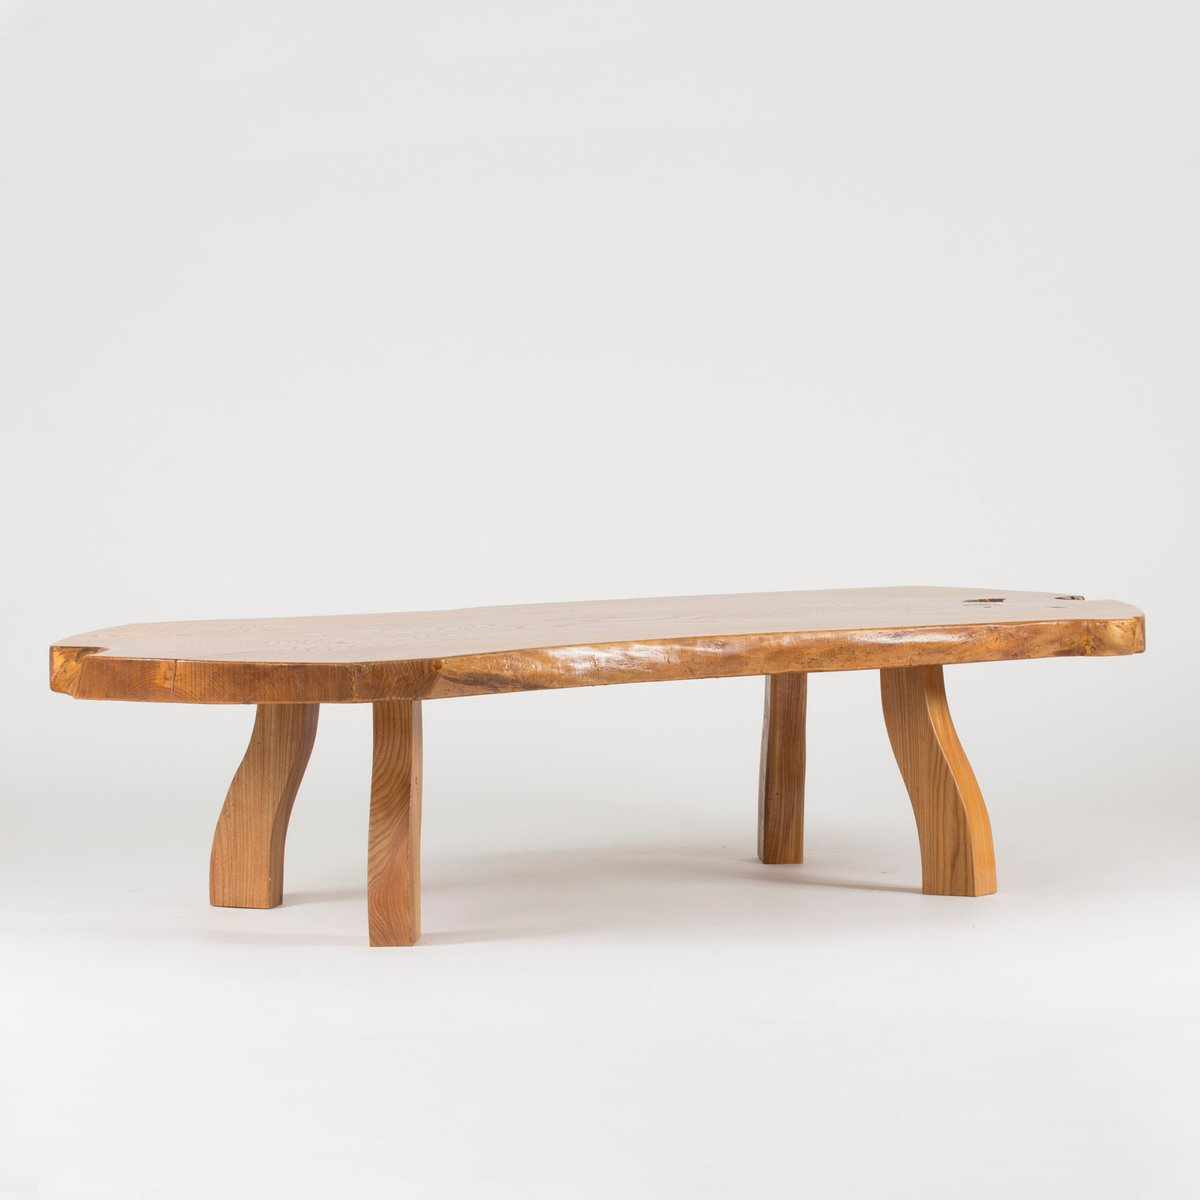 Slab Coffee Table: Pine Slab Coffee Table By C.A. Beijbom, 1960s For Sale At